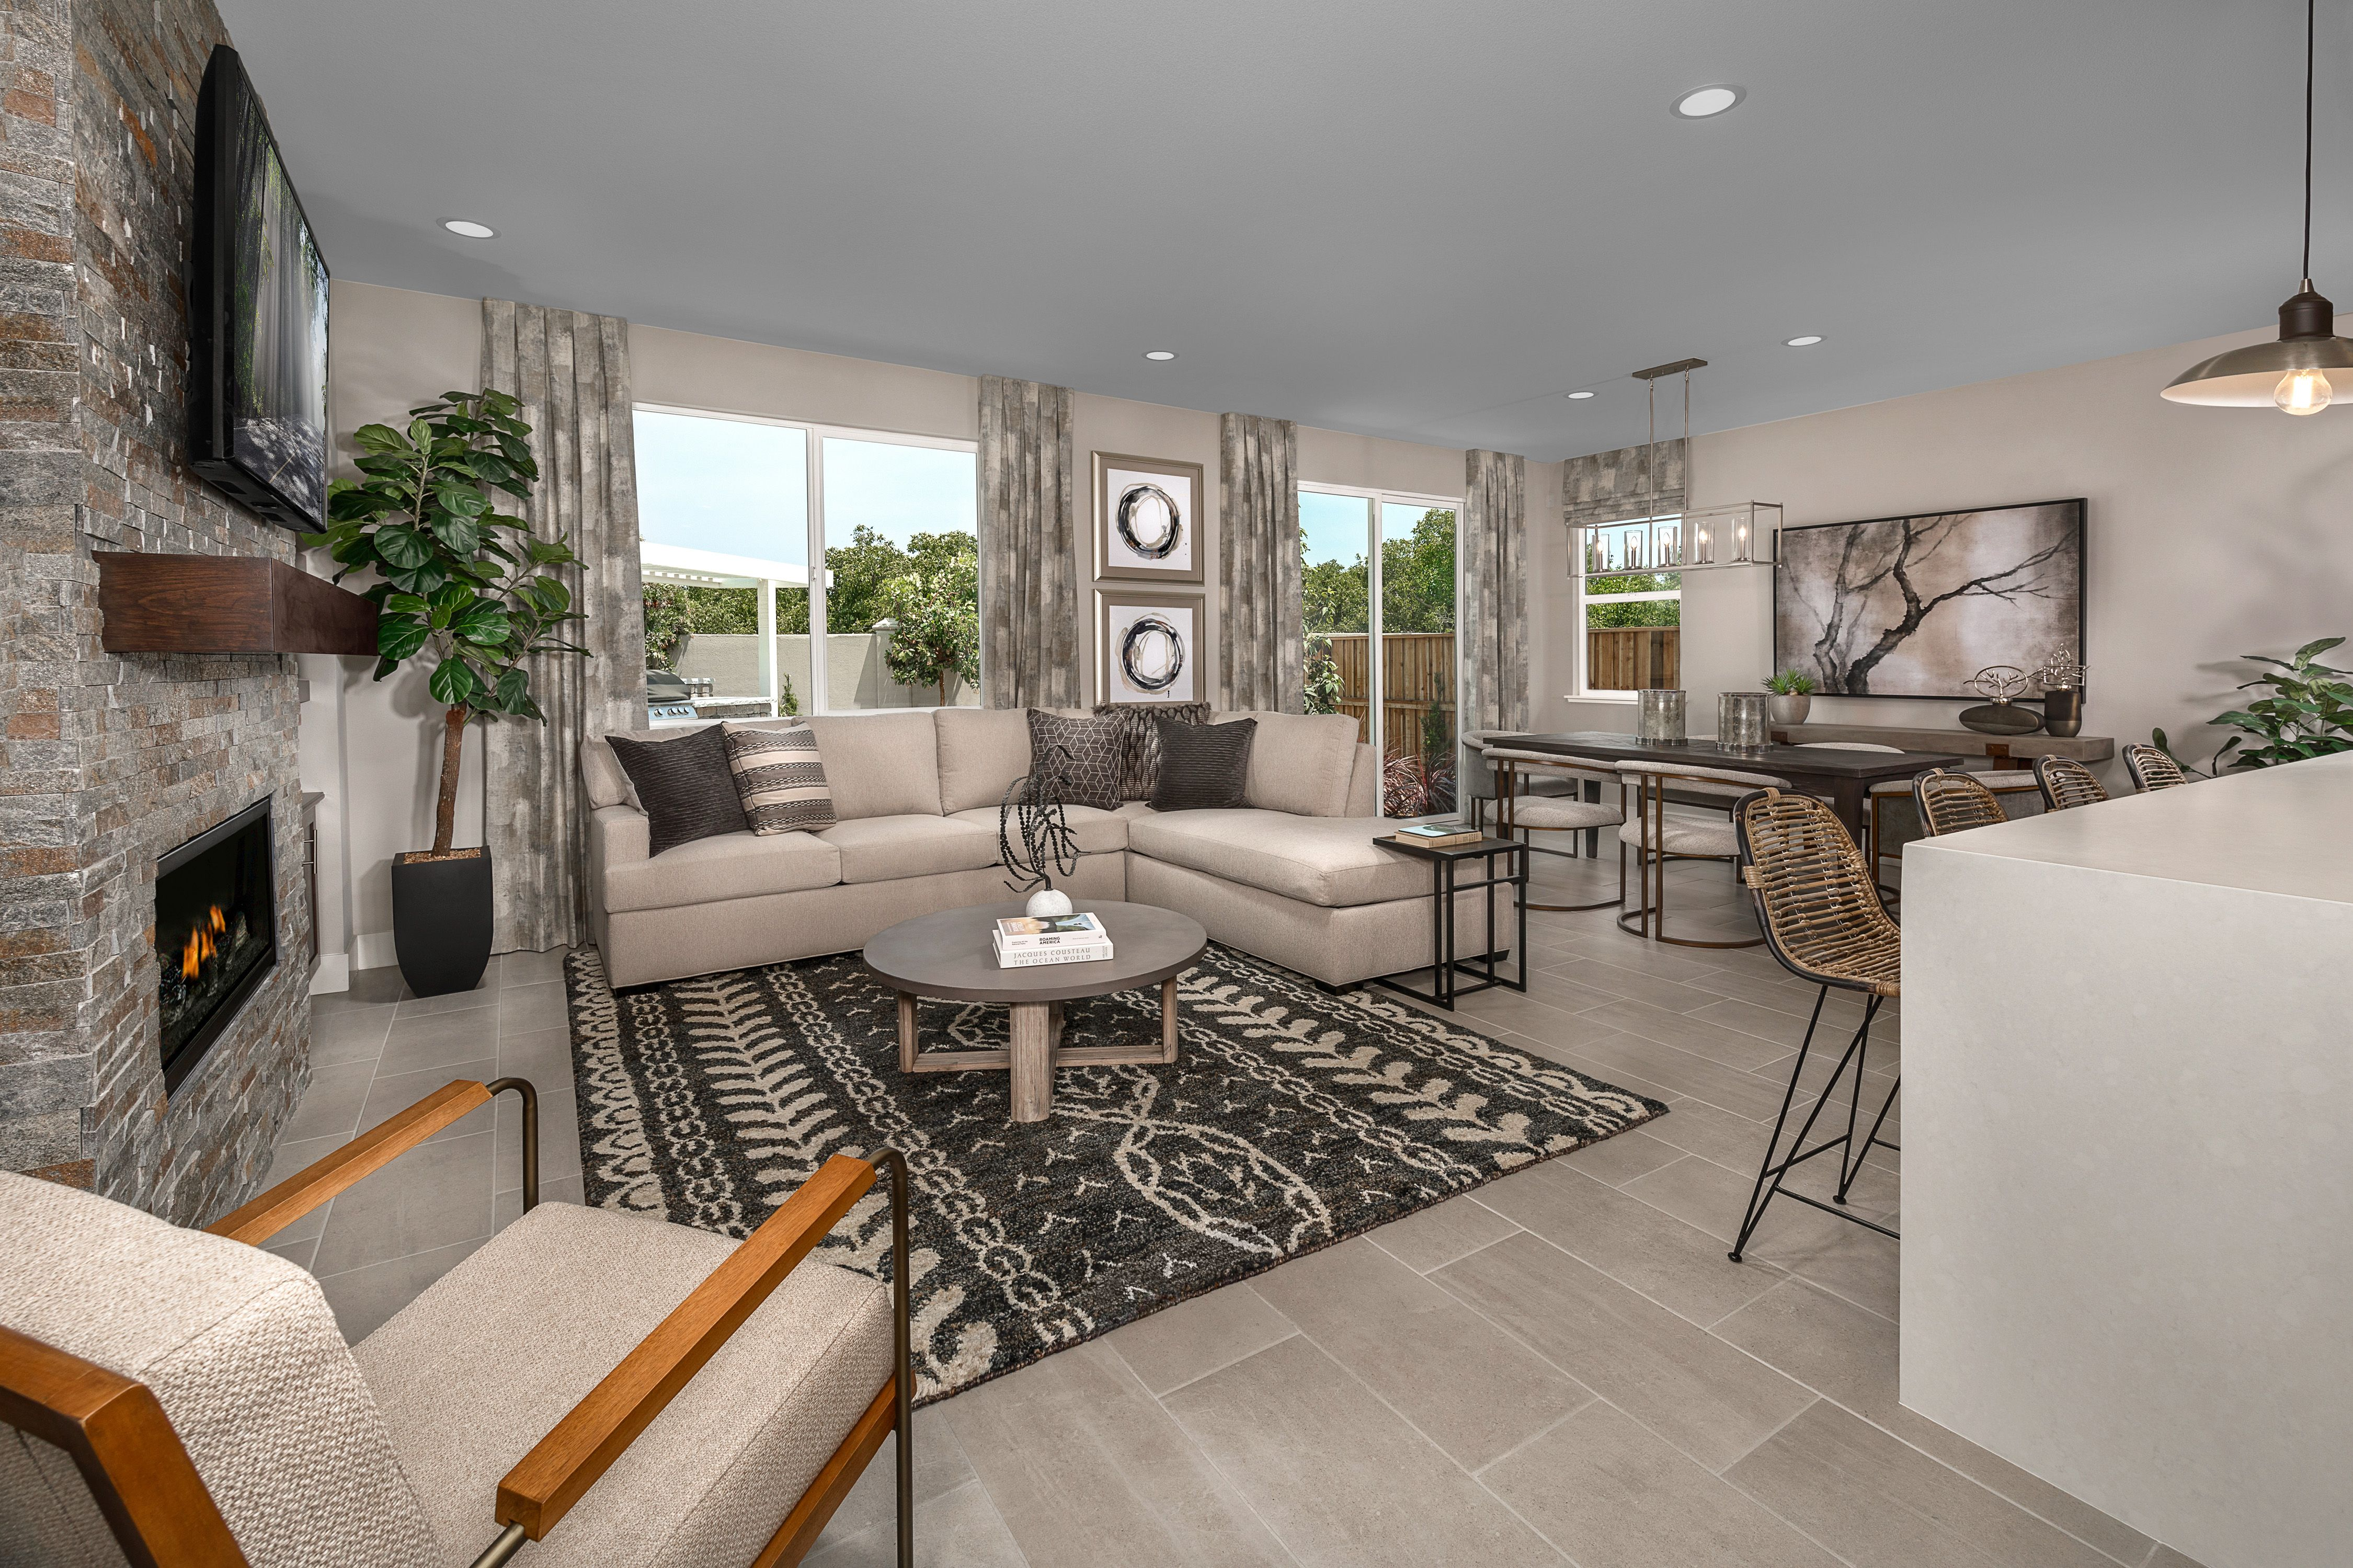 Living Area featured in the Mayfair Residence 1 By Kiper Homes in Santa Cruz, CA